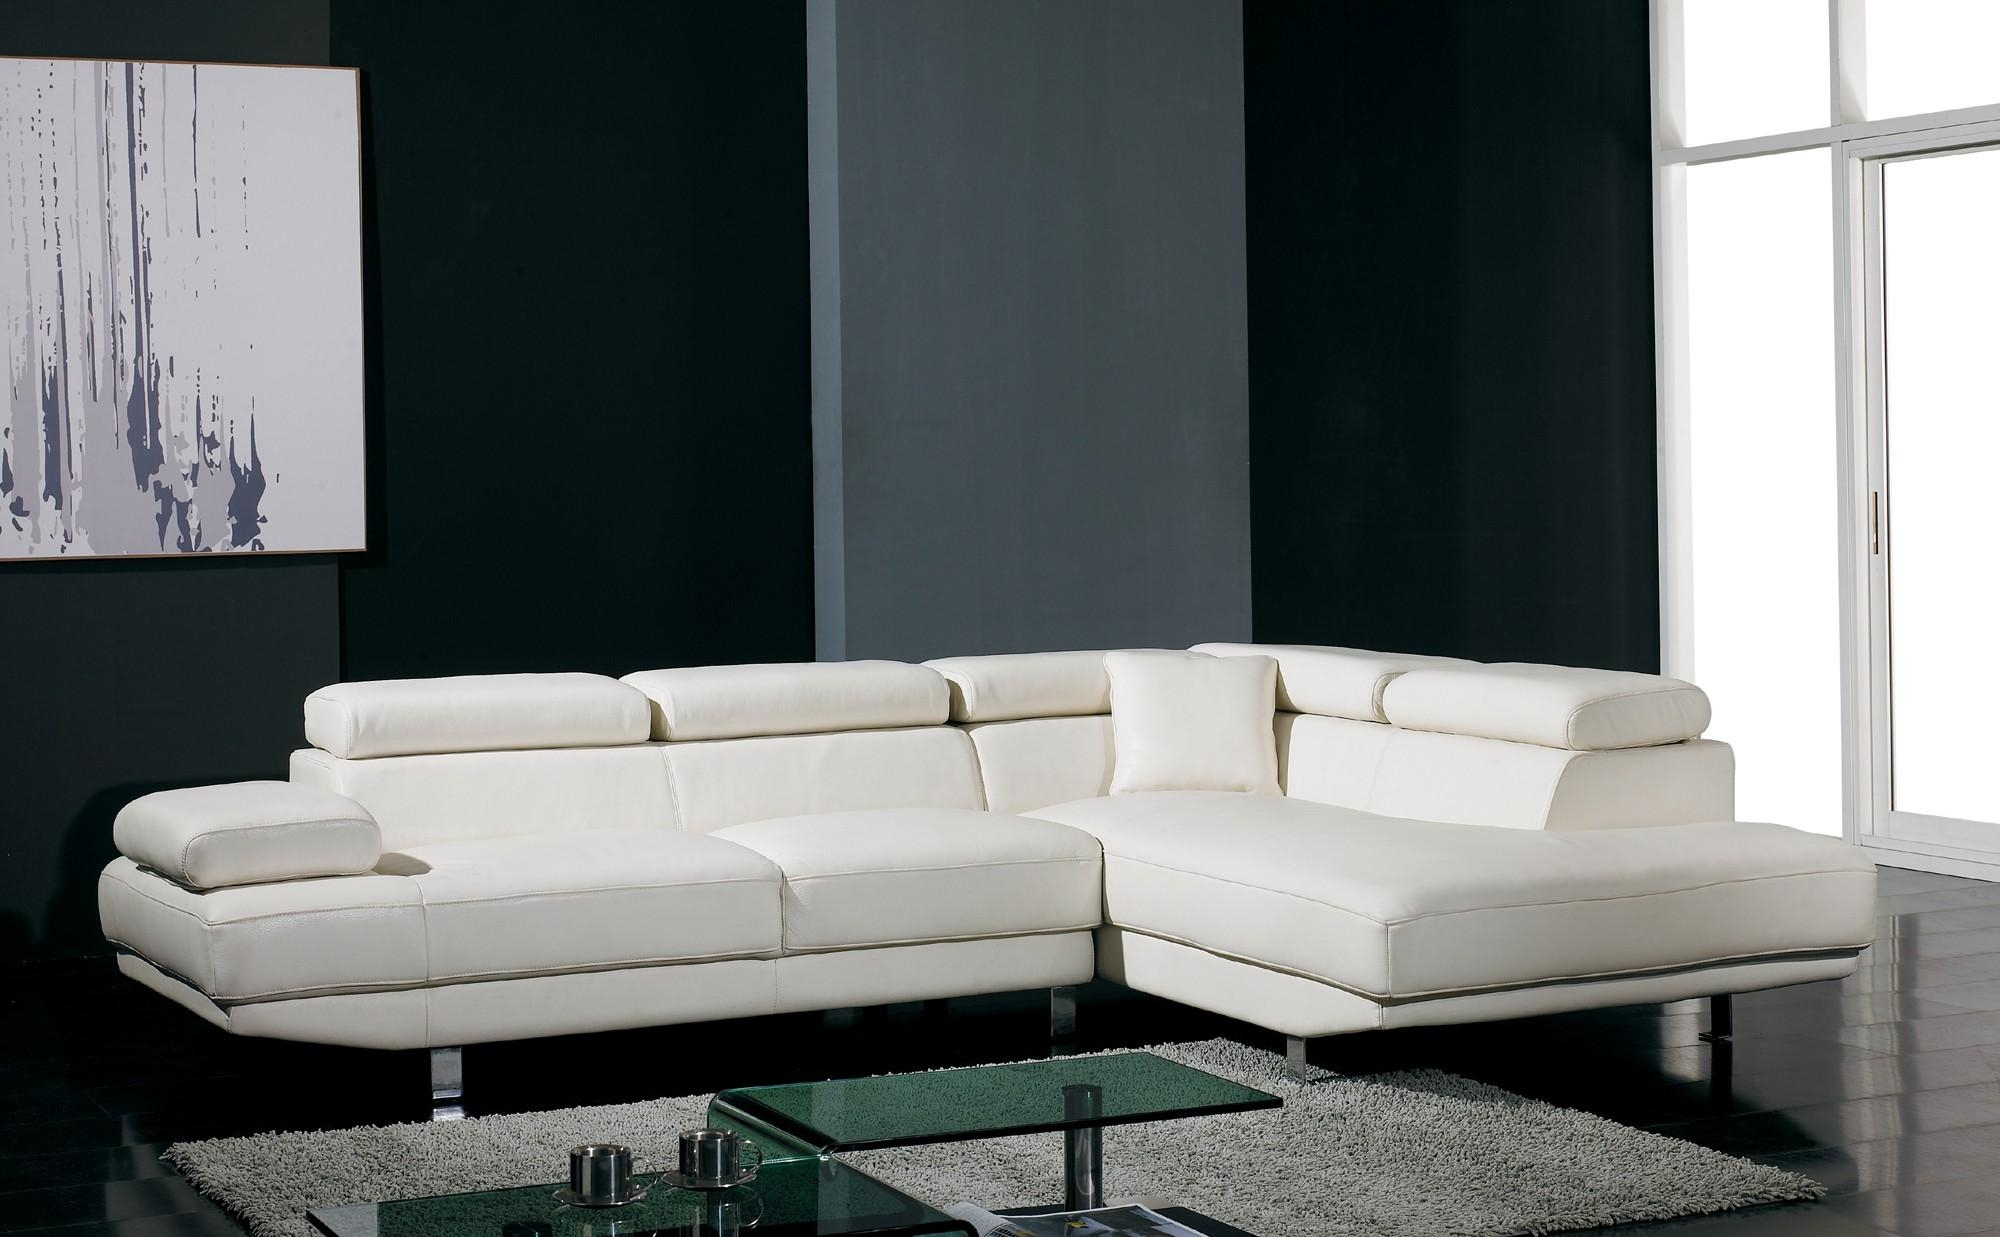 T60 Ultra Modern White Leather Sectional Sofa Intended For Leather Modern Sectional Sofas (Image 19 of 20)